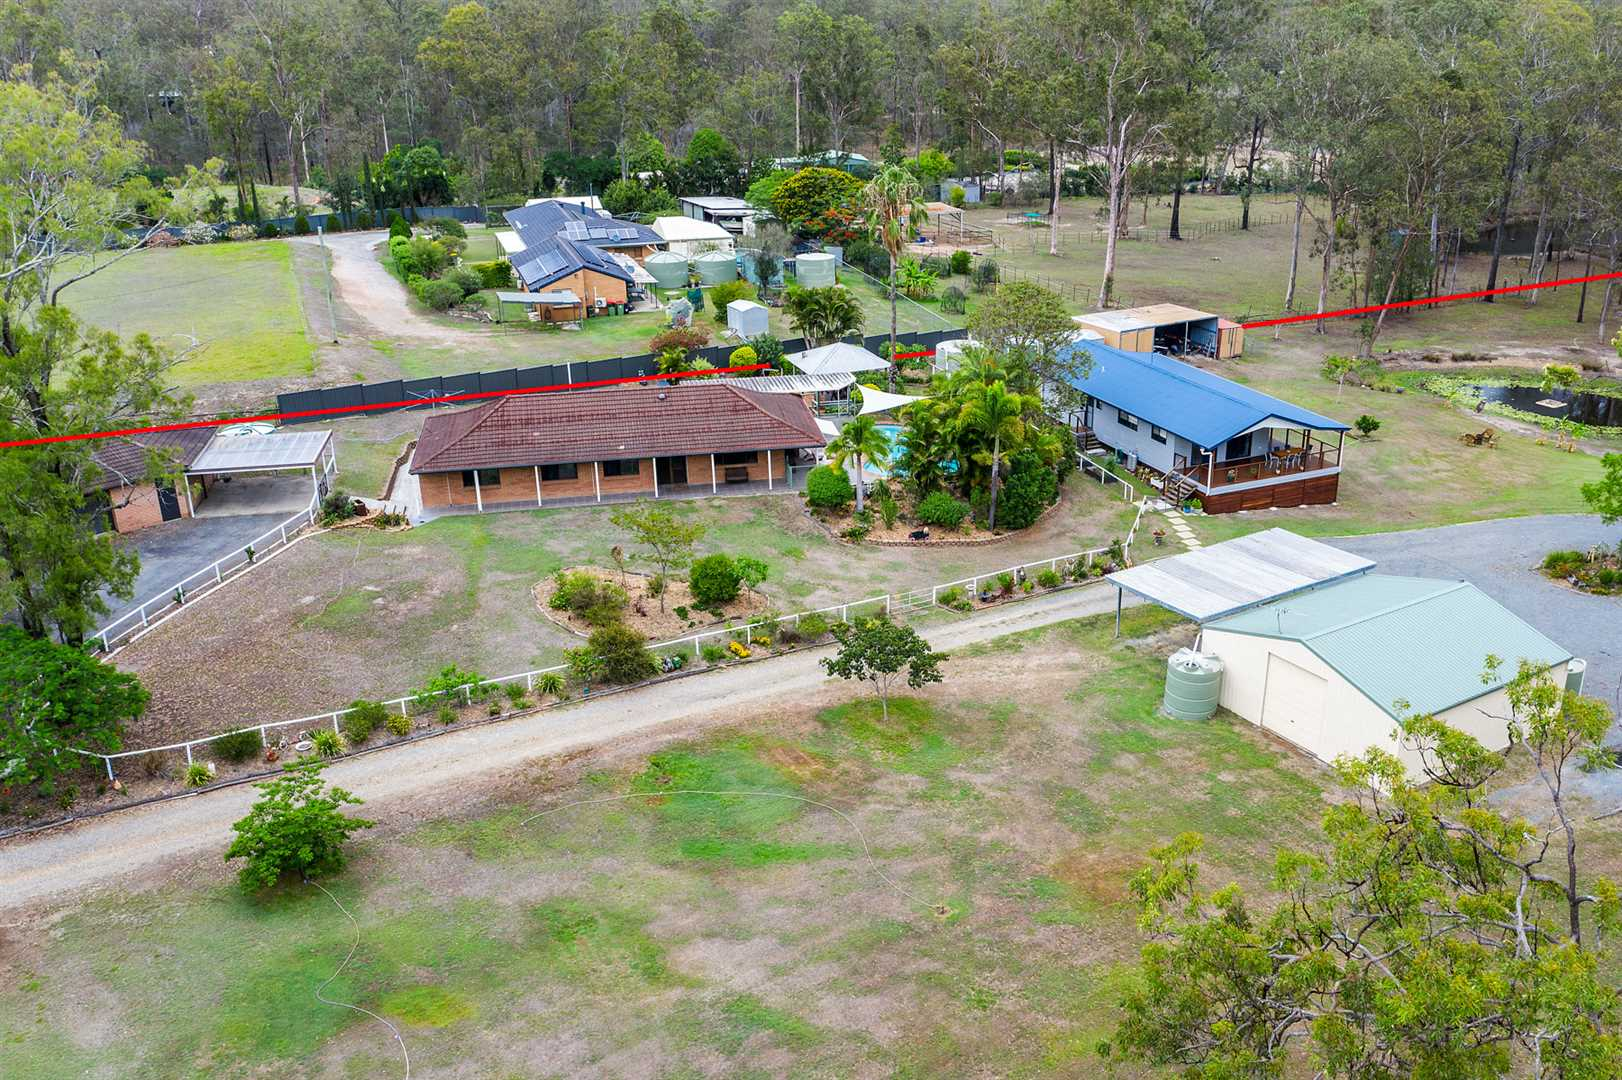 Two separate houses on 5 acres - Ticks ALL the boxes